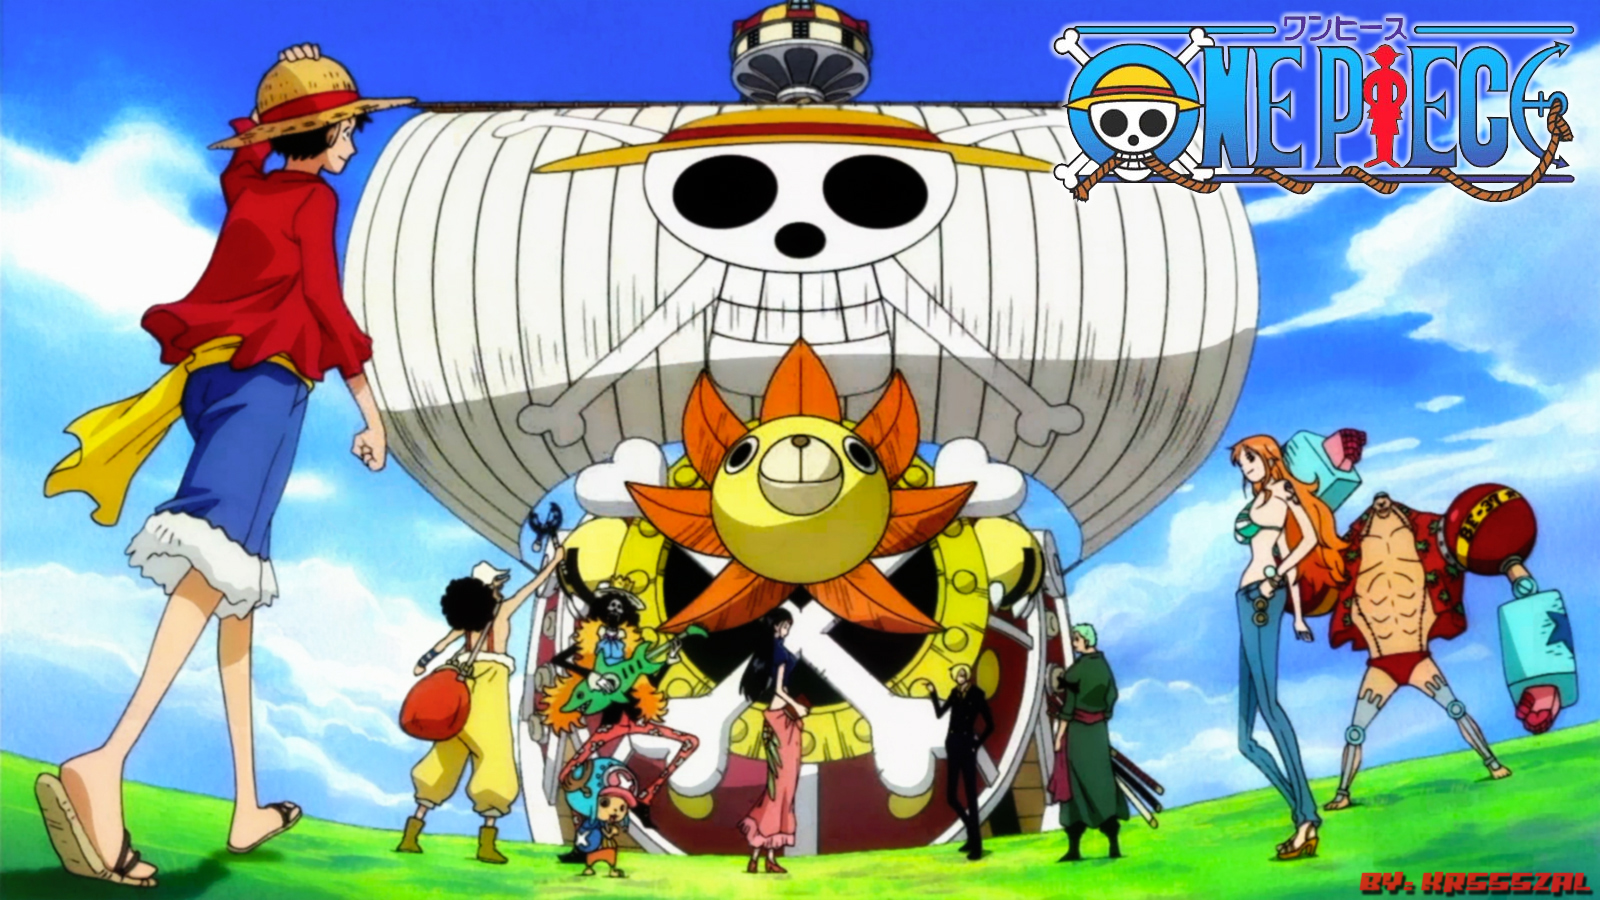 one piece after 2 - photo #18